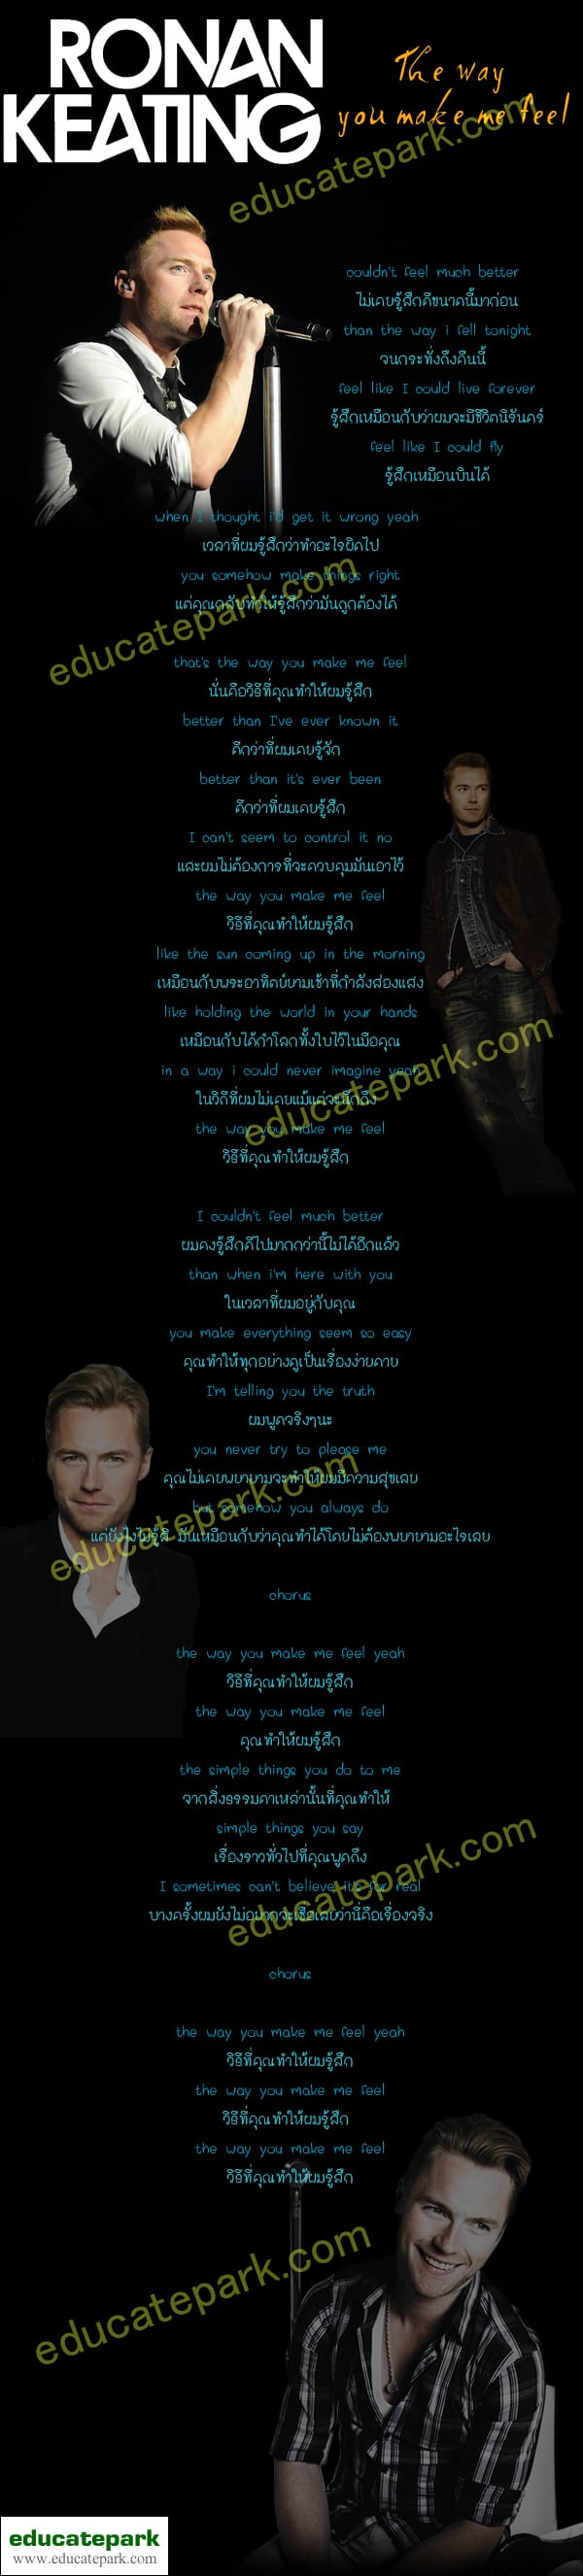 แปลเพลง The Way You Make Me Feel - Ronan Keating